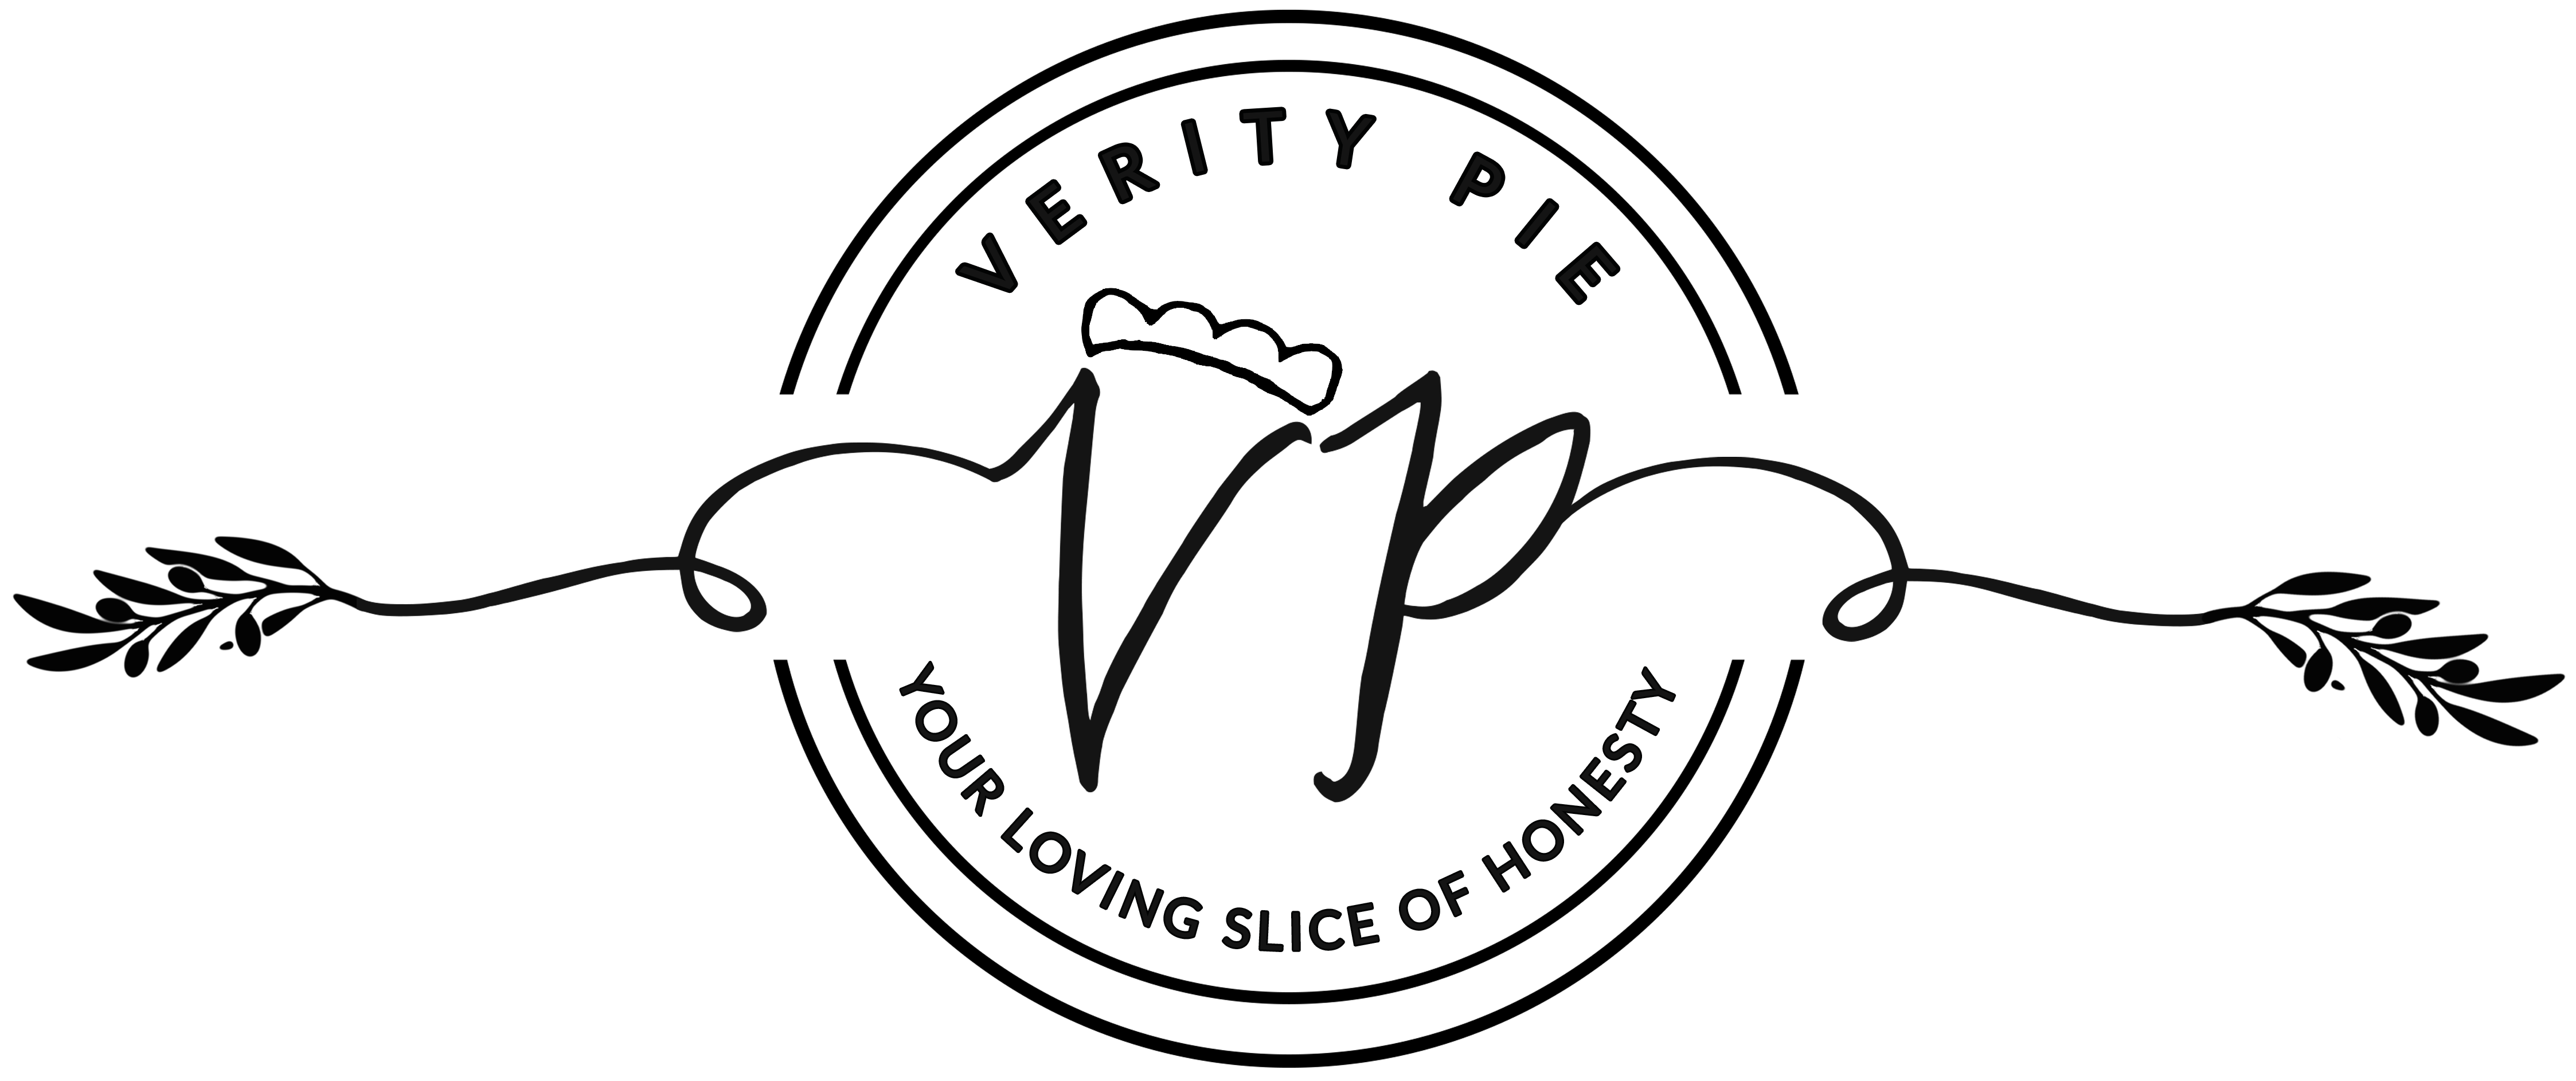 Verity Pie